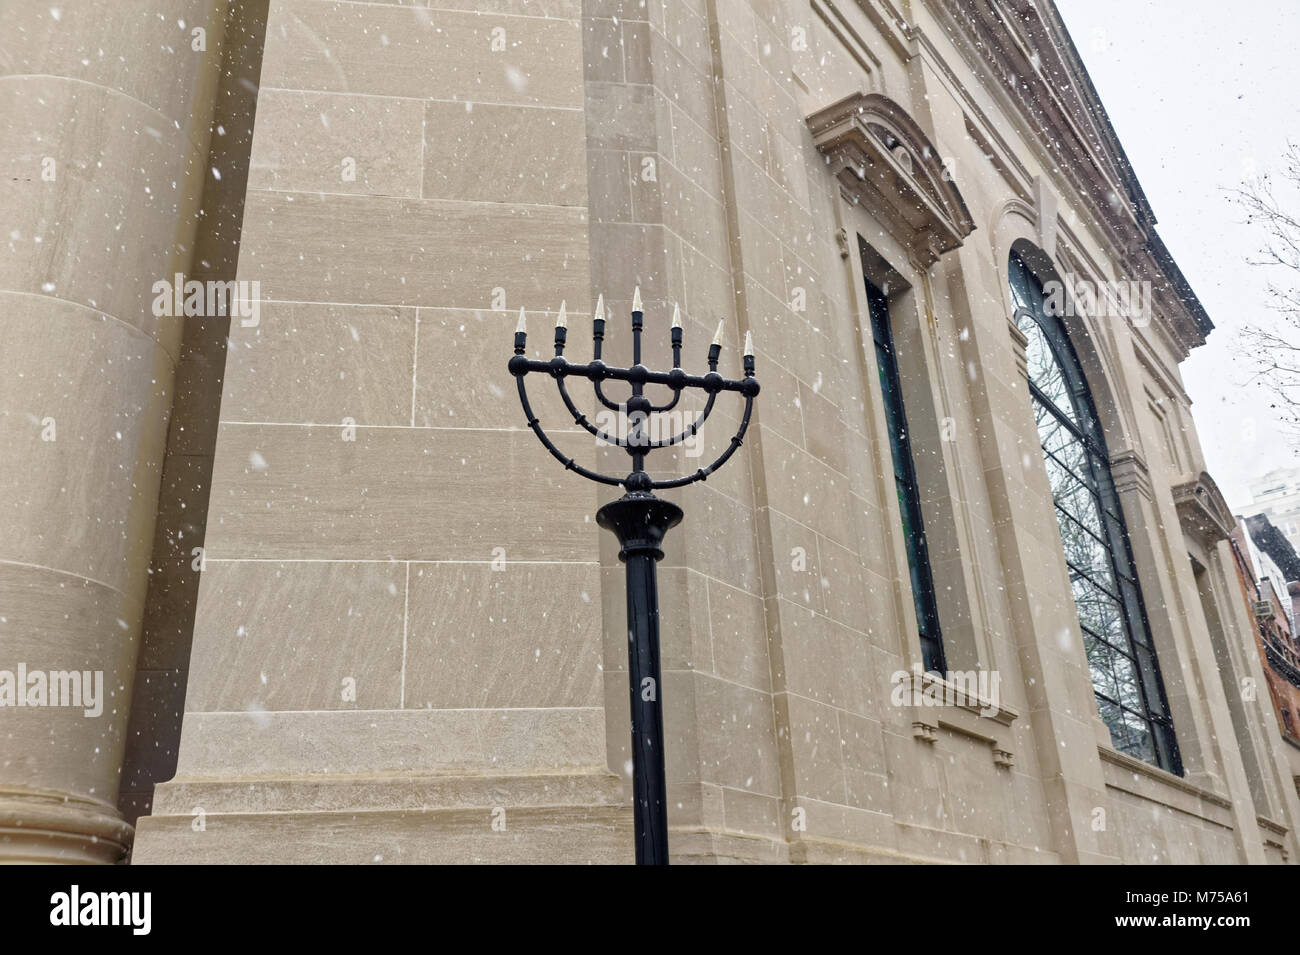 Menorah in front of the Beth Elohim synagogue in Brooklyn, New York. - Stock Image